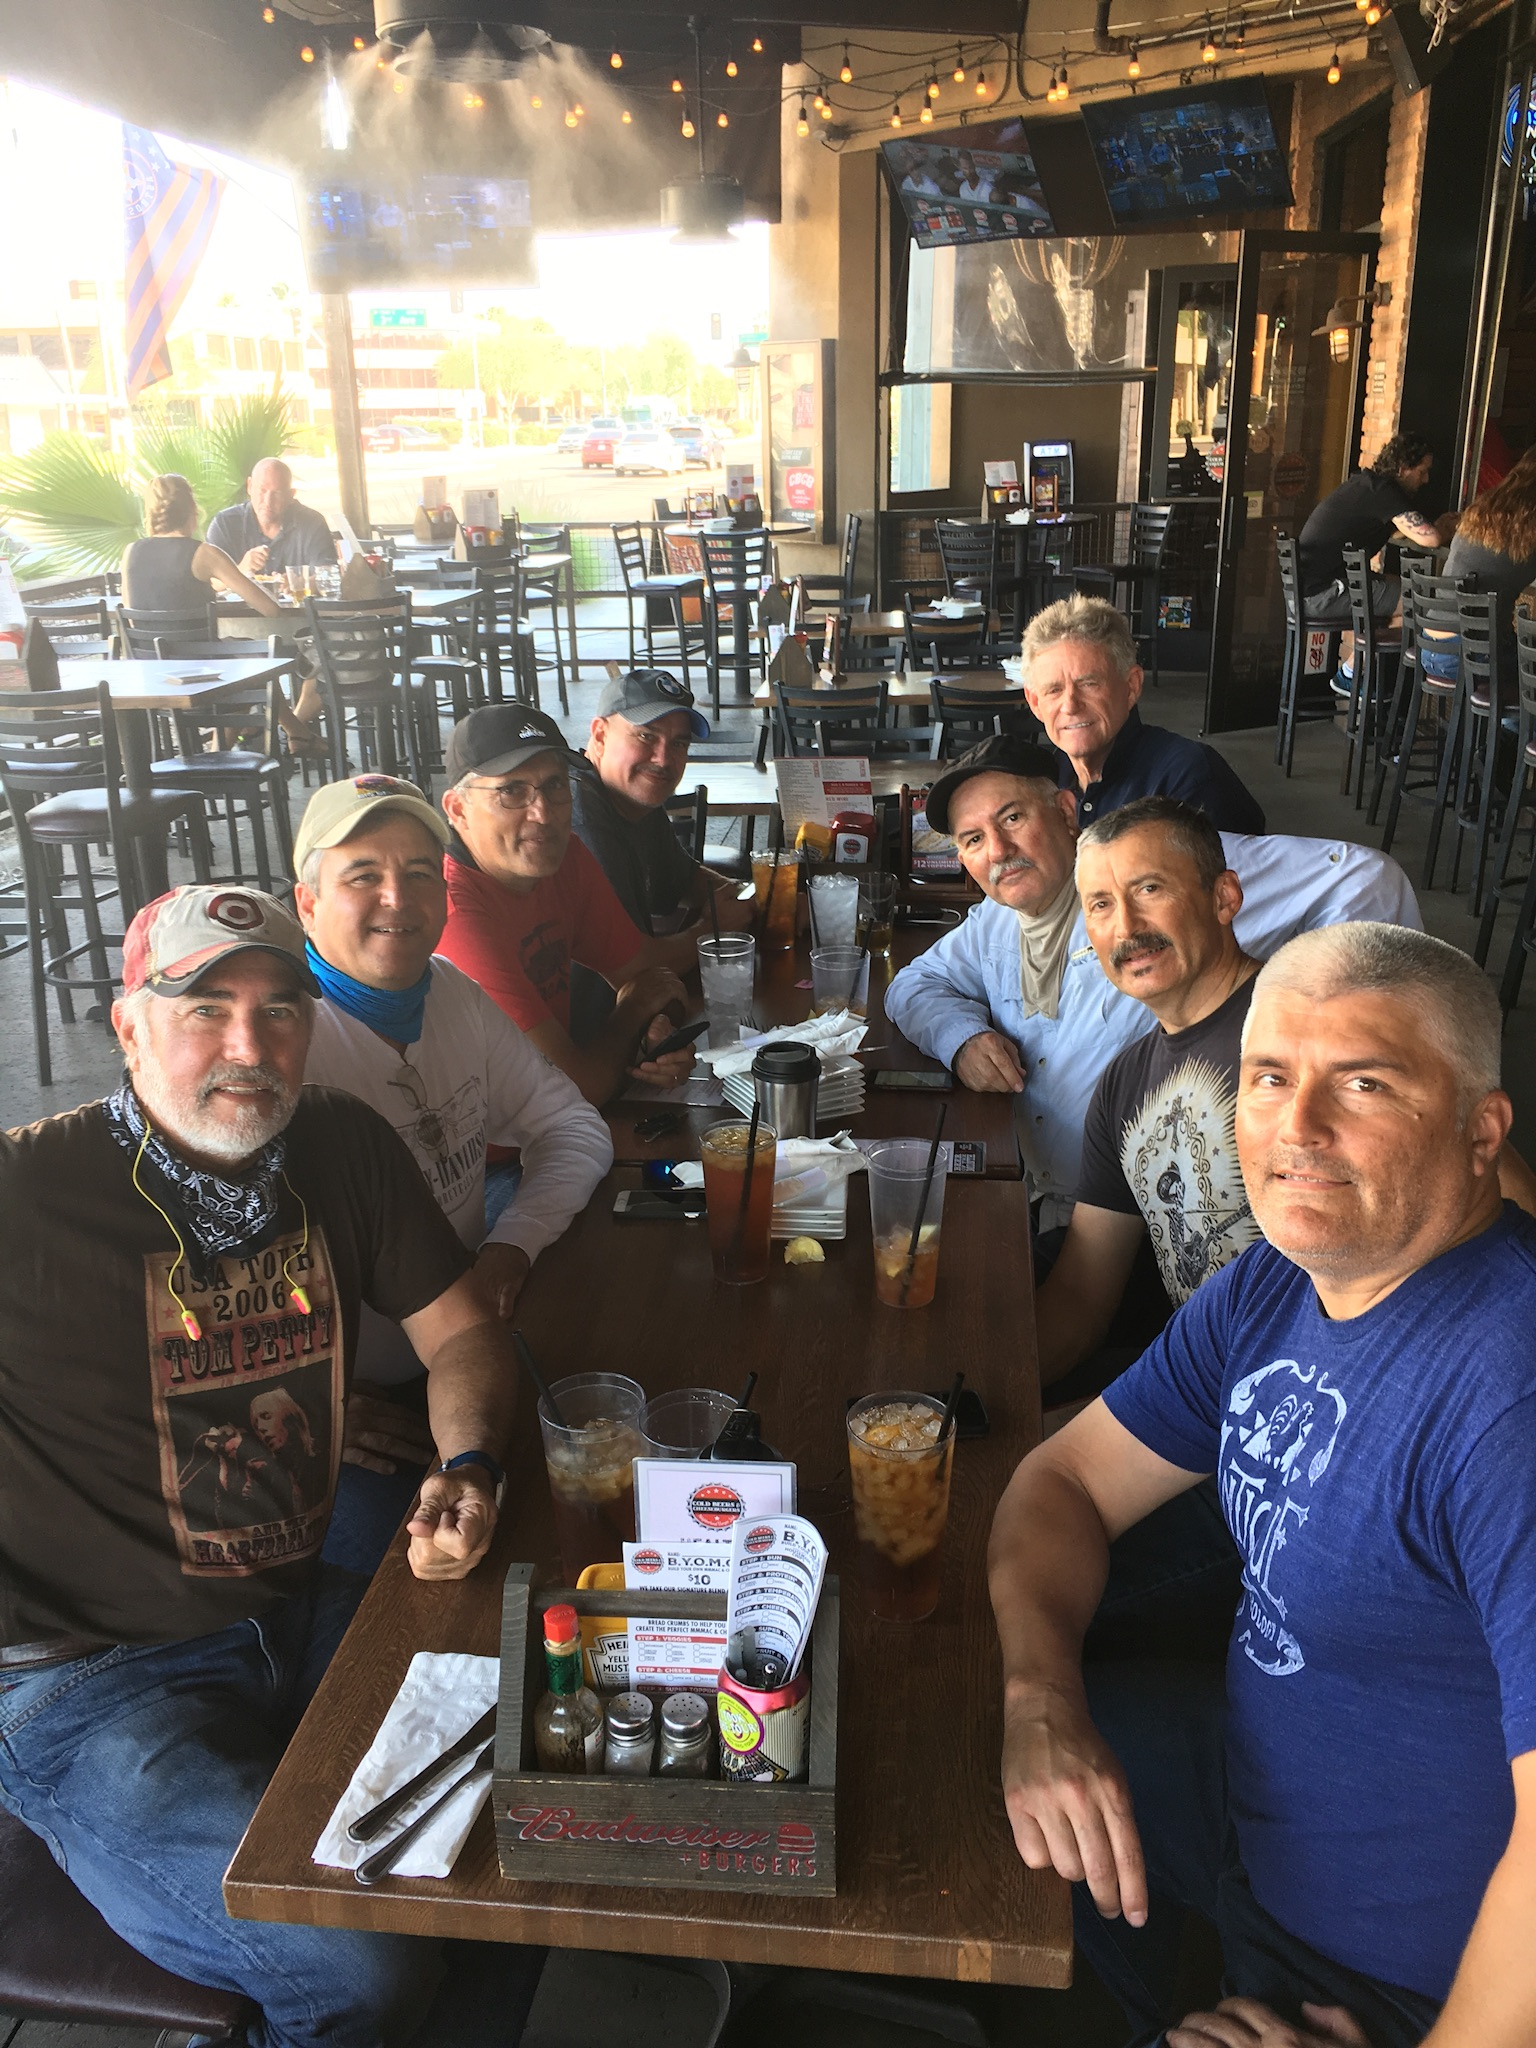 Lunch in Phoenix - Coming off 112 degrees!